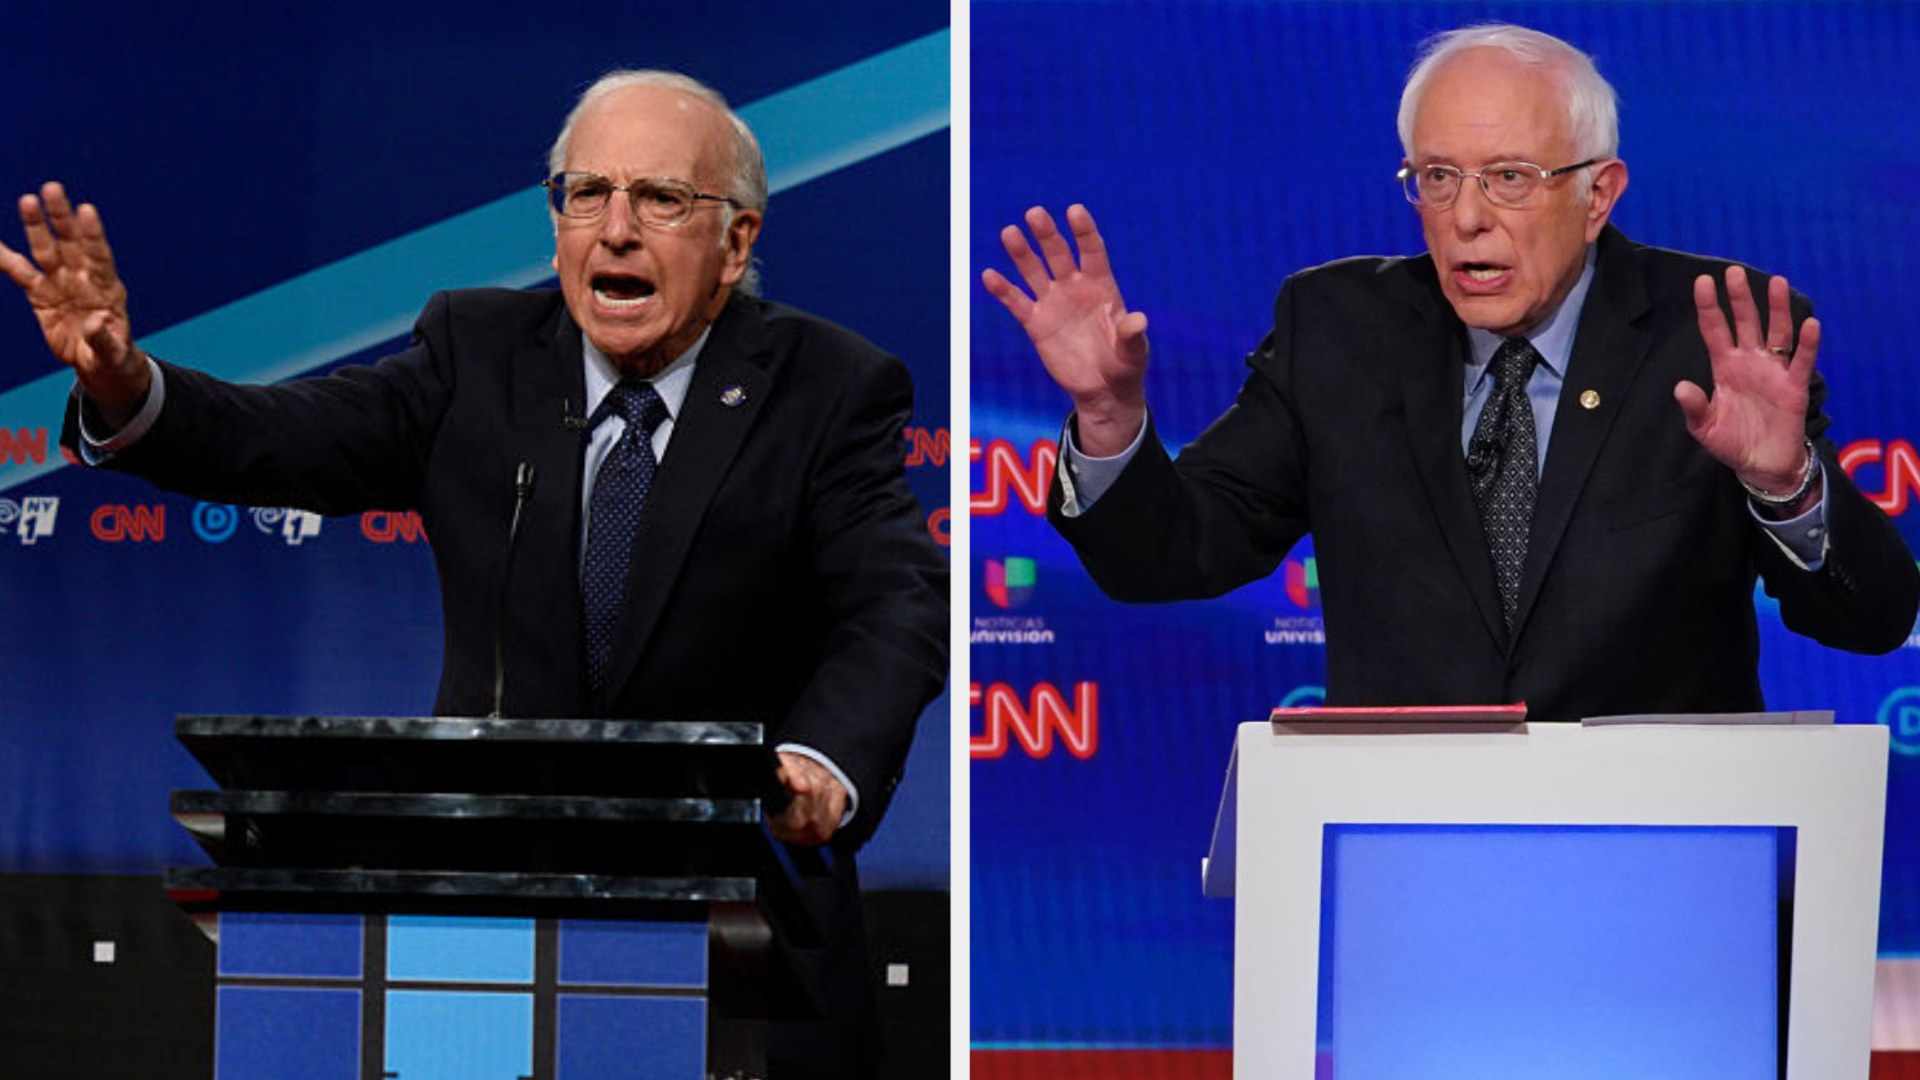 Larry David as Bernie on the debate stage talking with his hands side by side with Bernie on a debate stage talking with his hands